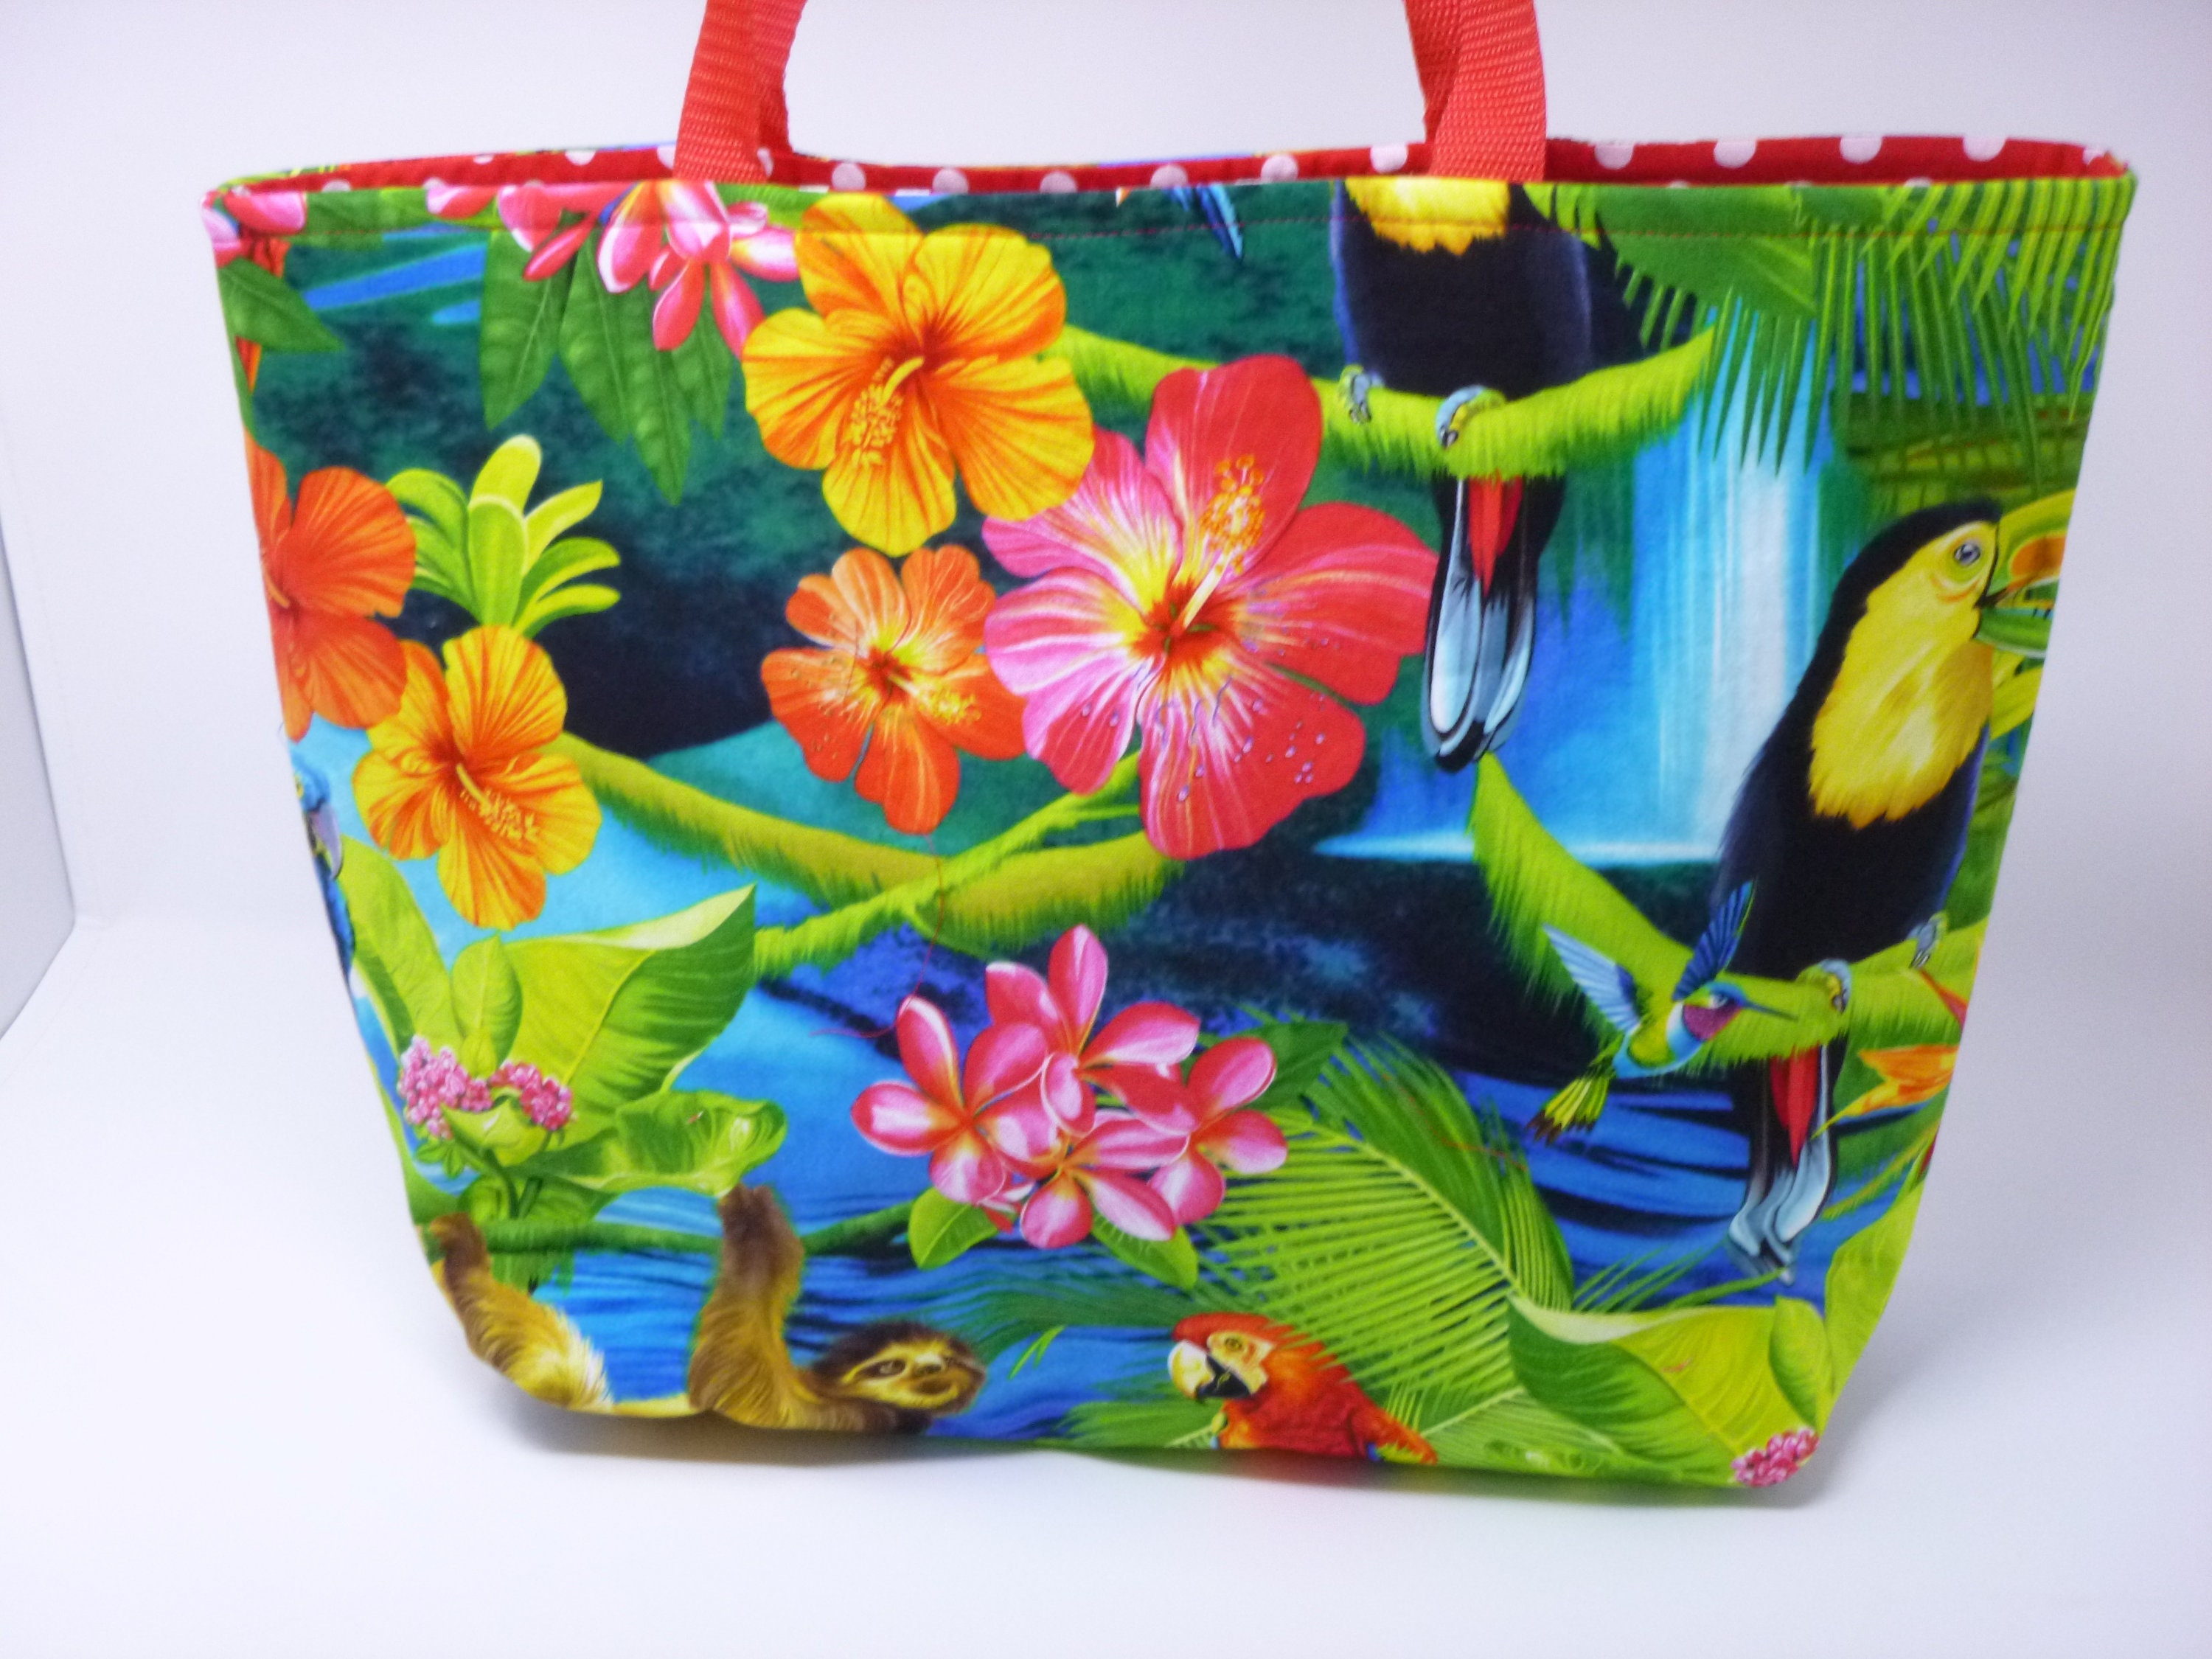 Tropical Tote Bag | Tropical Handbag | Shopping Bag | Fabric Tote Bag |  Hobby Tote Bag | Storage Tote Bag | Baby Tote Bag | Fabric Purse